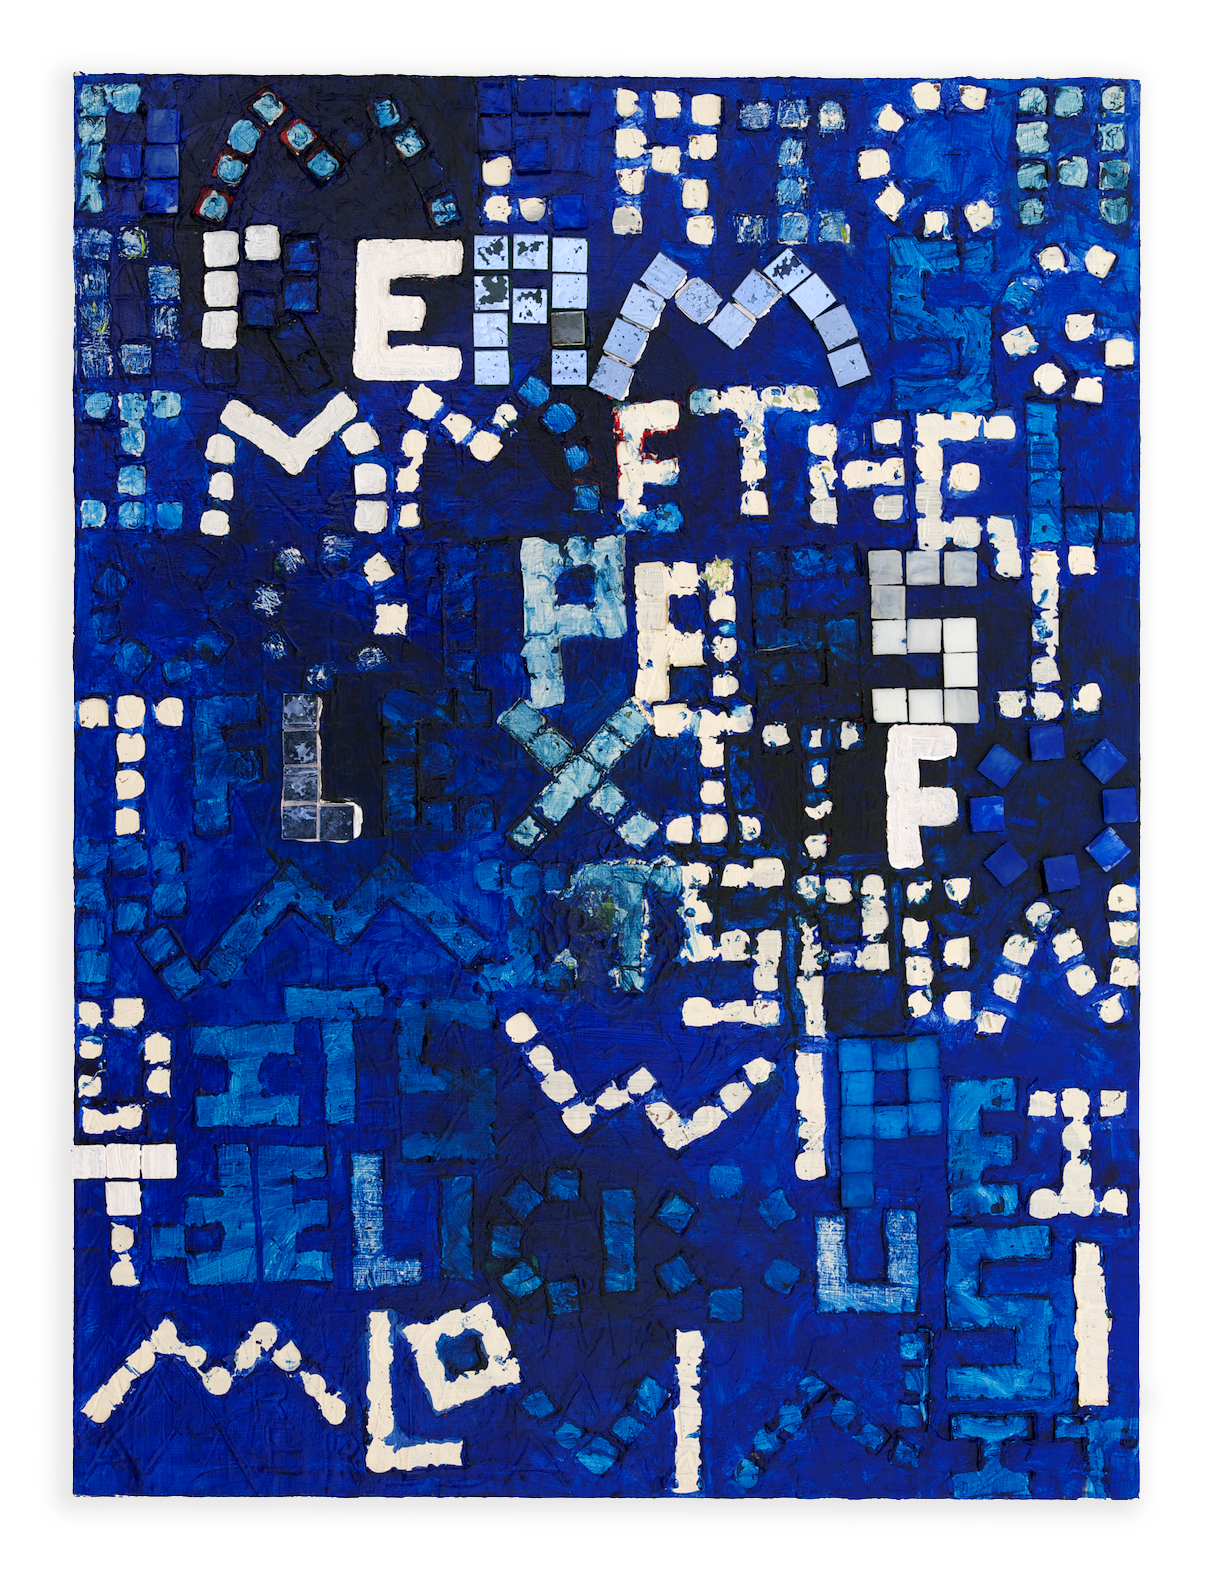 America Dreams , 2013, Acrylic and glass tile on wood, 40 x 30 in